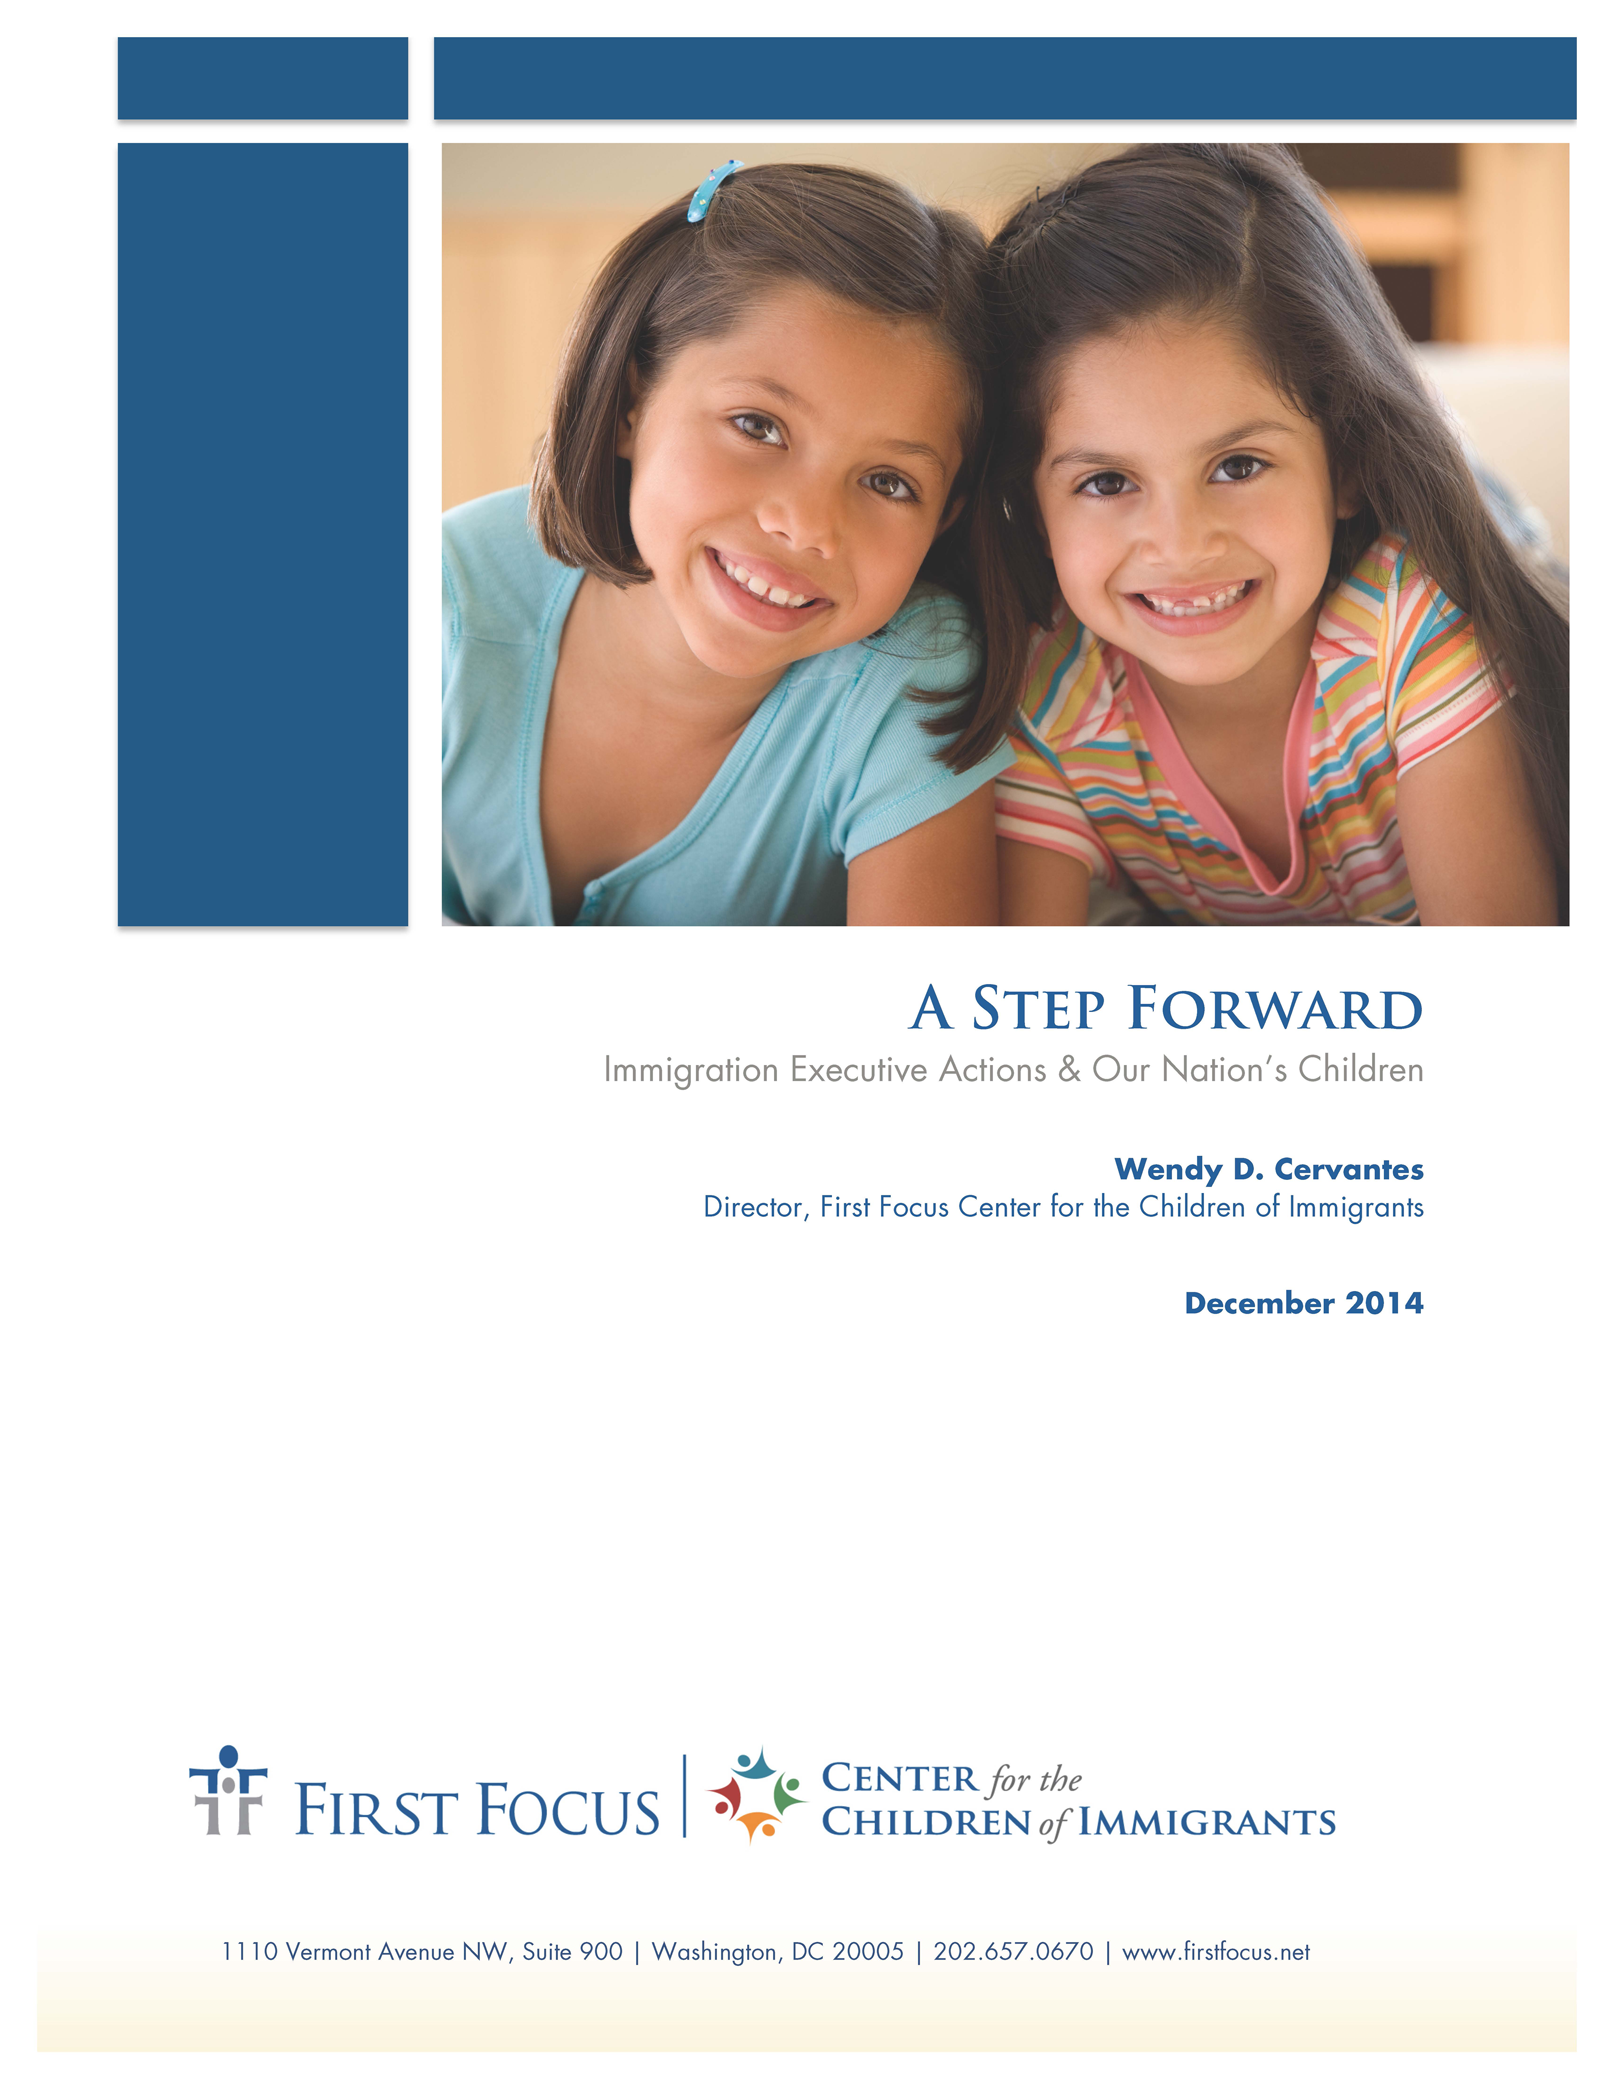 A Step Forward: Immigration Executive Actions & Our Nation's Children